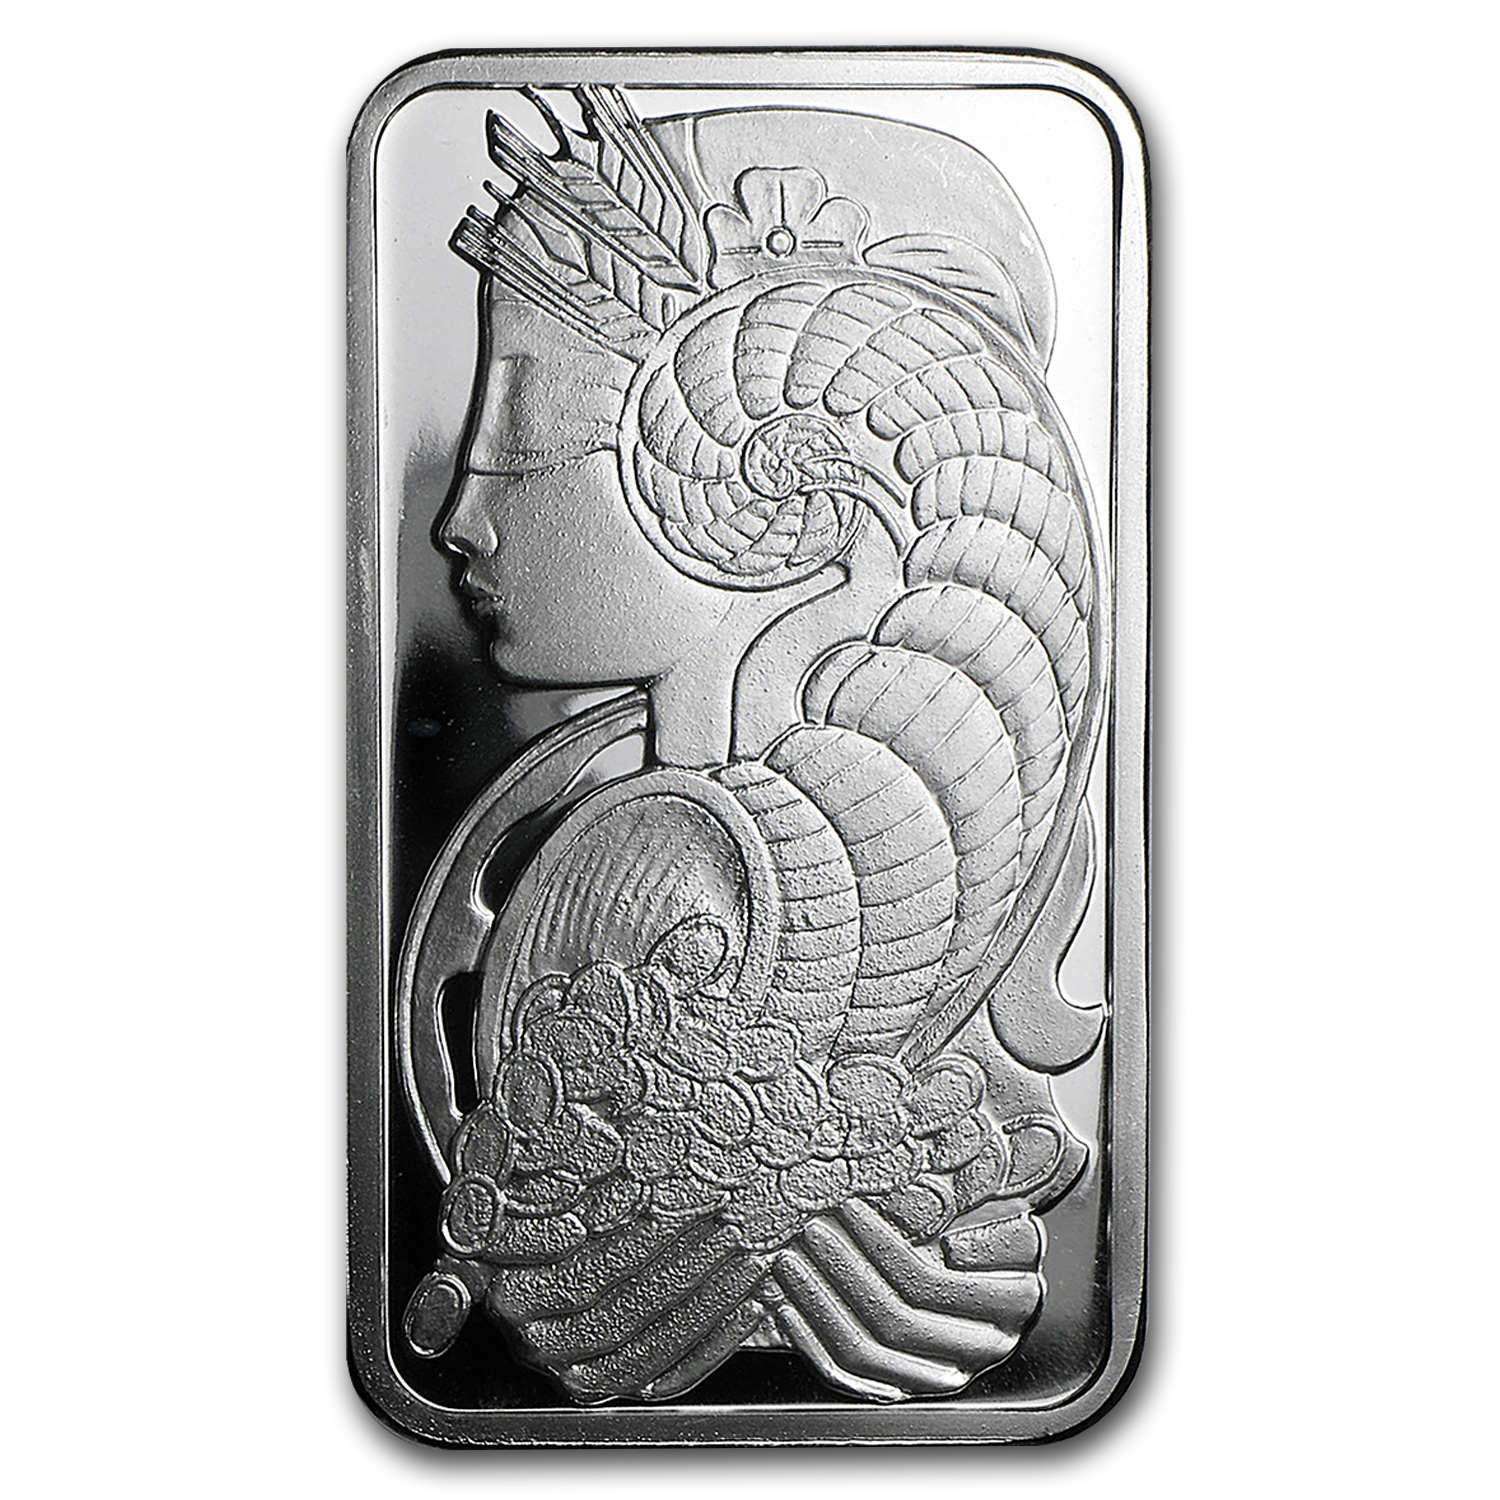 1 oz Silver Bar - PAMP Suisse Fortuna (No COA/Assay)